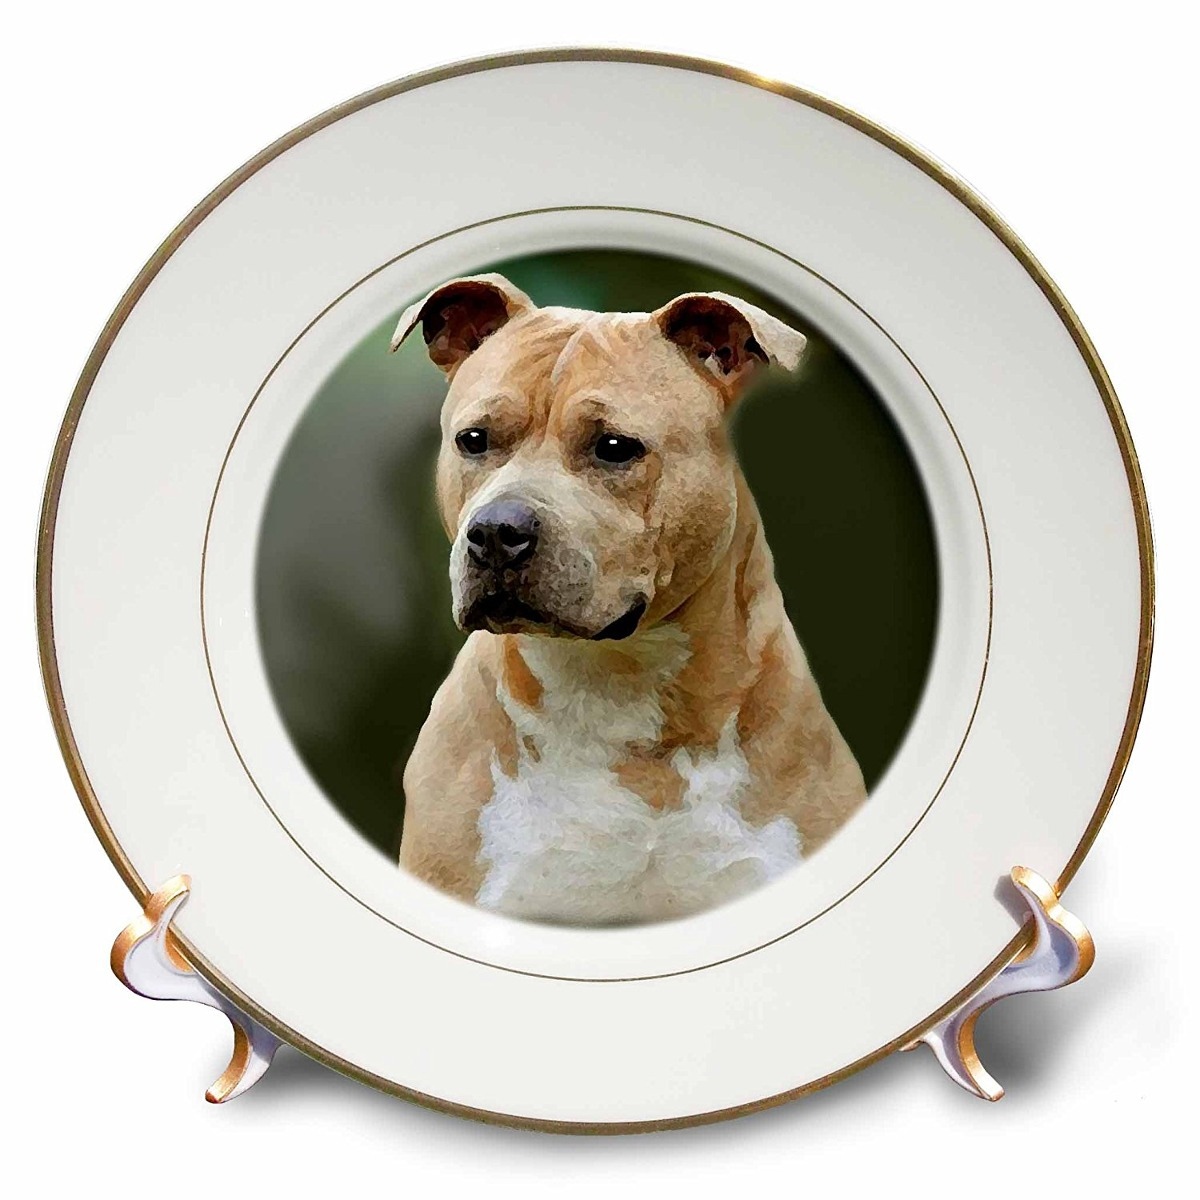 3drose Cp_4253_1 American Staffordshire Terrier Porcelain P ...